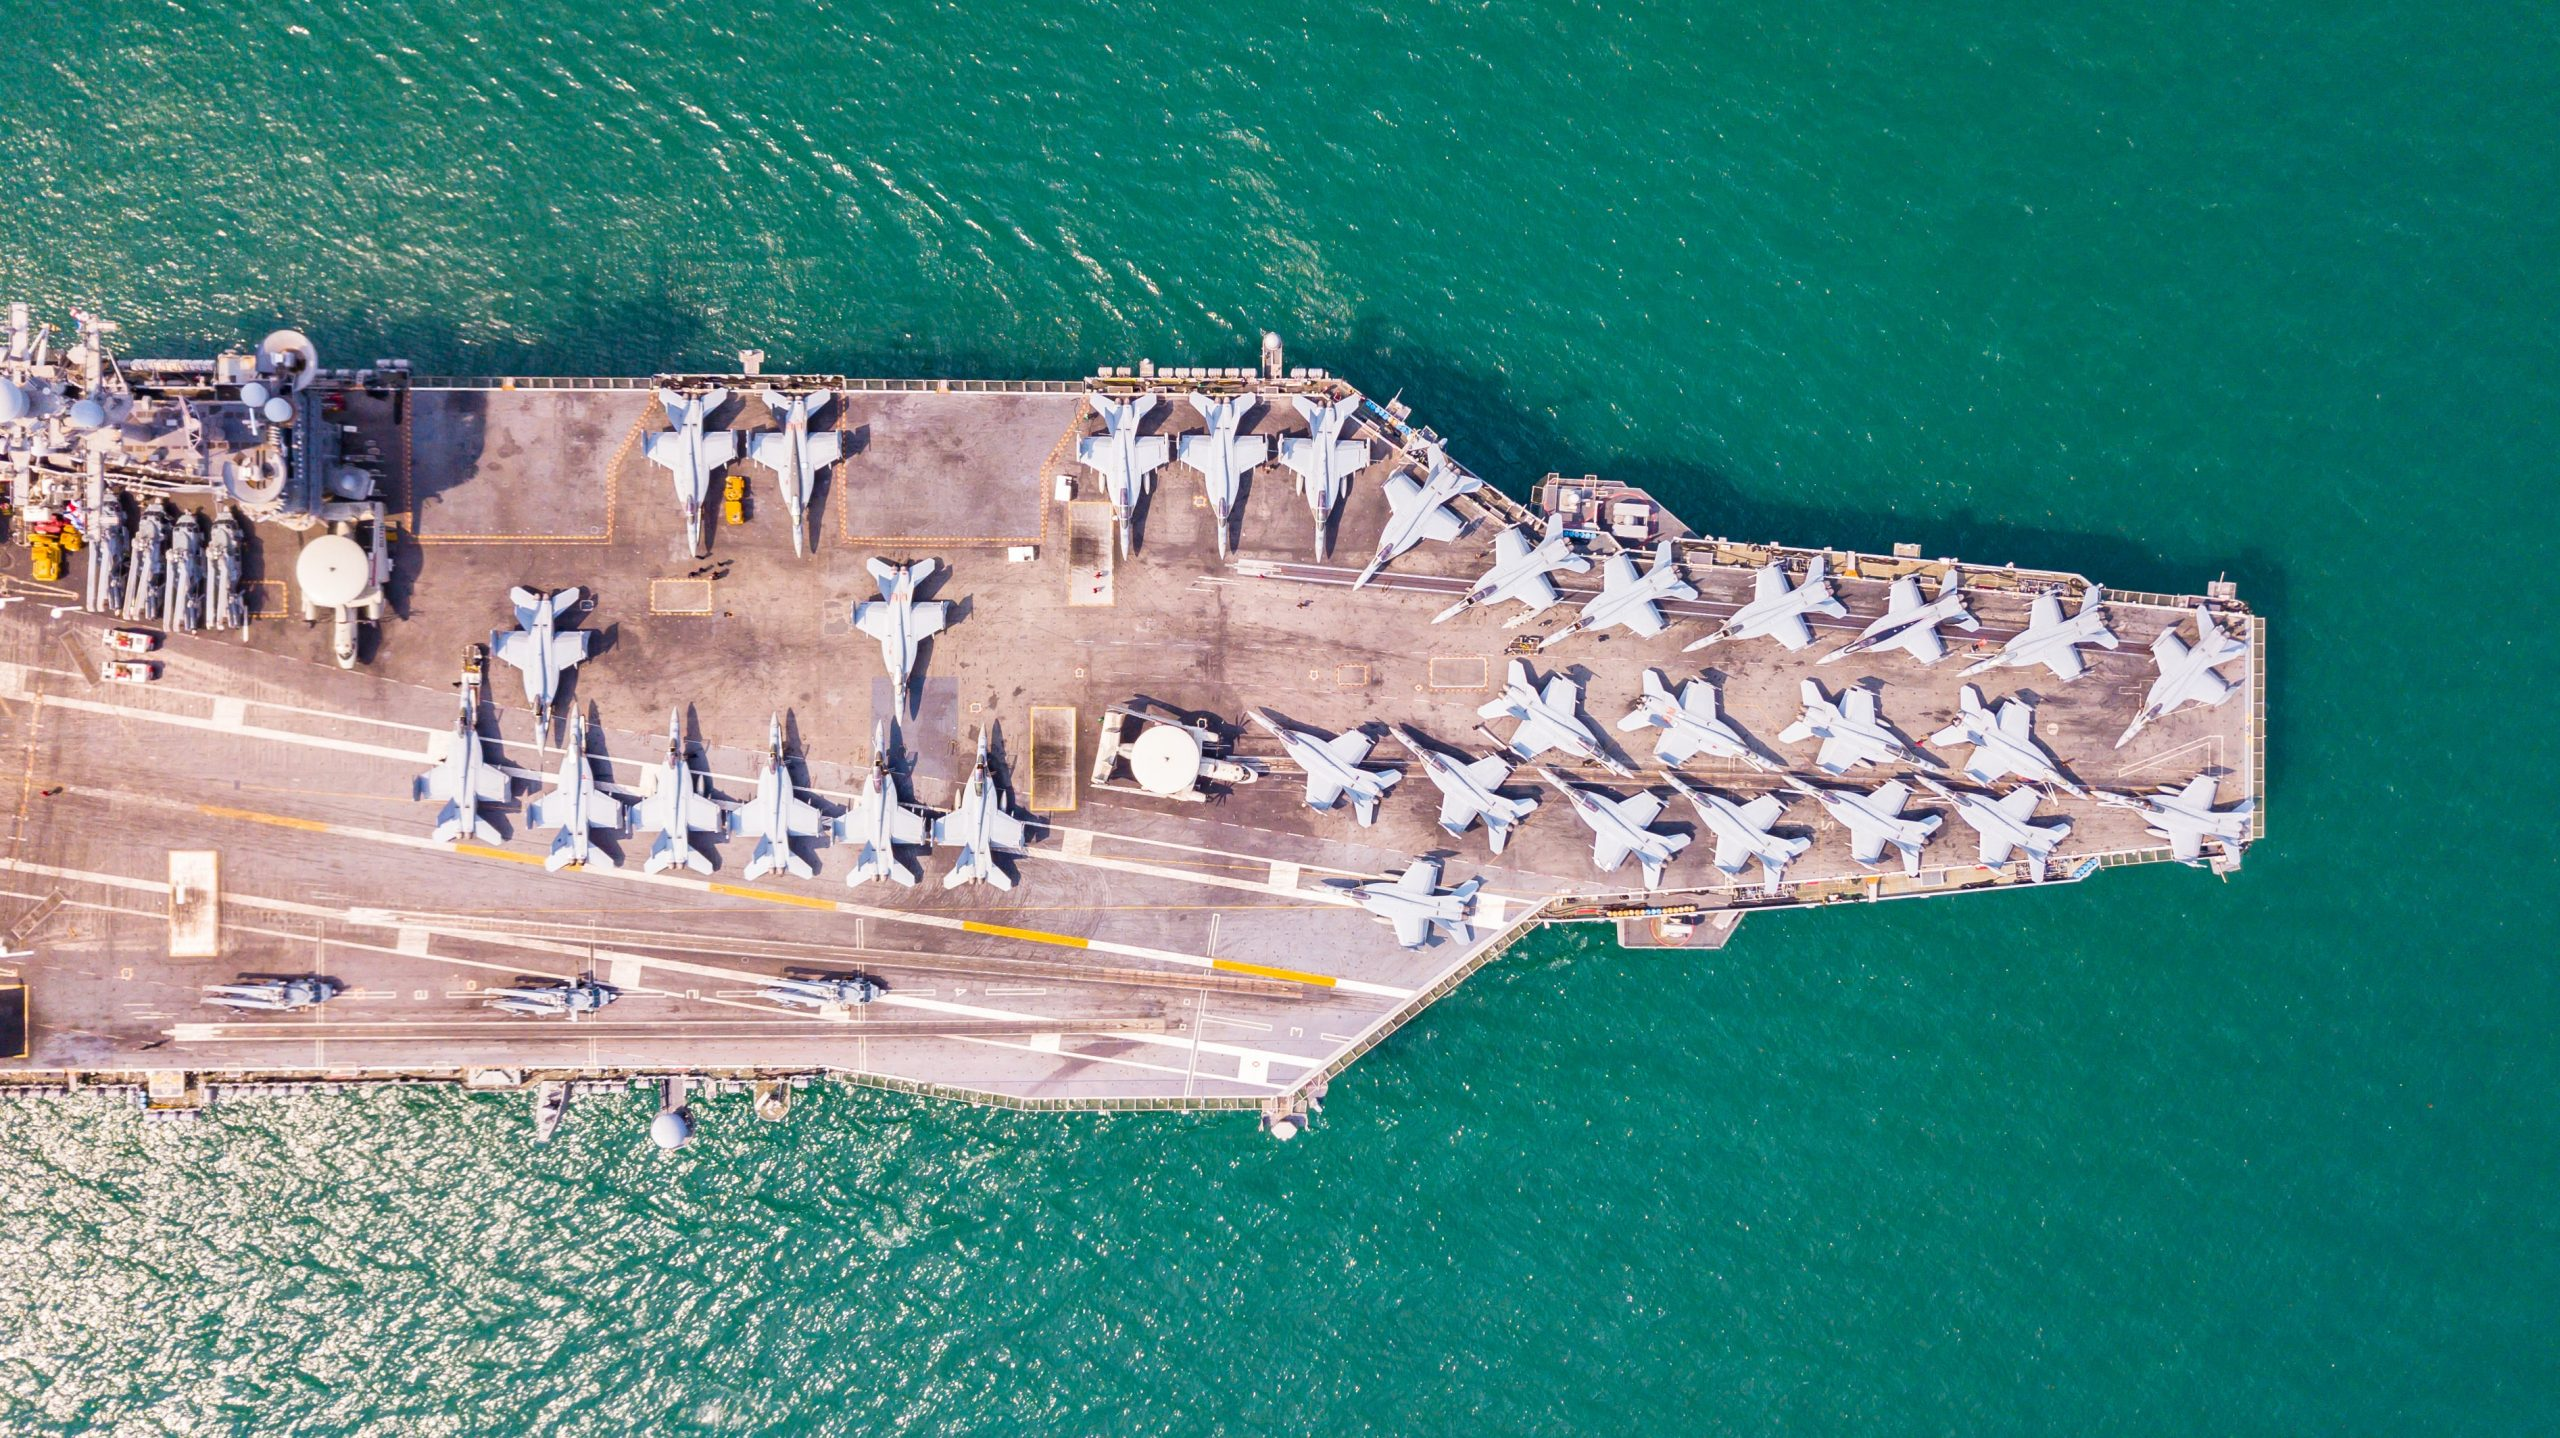 Navy Carrier ship carries planes over the ocean